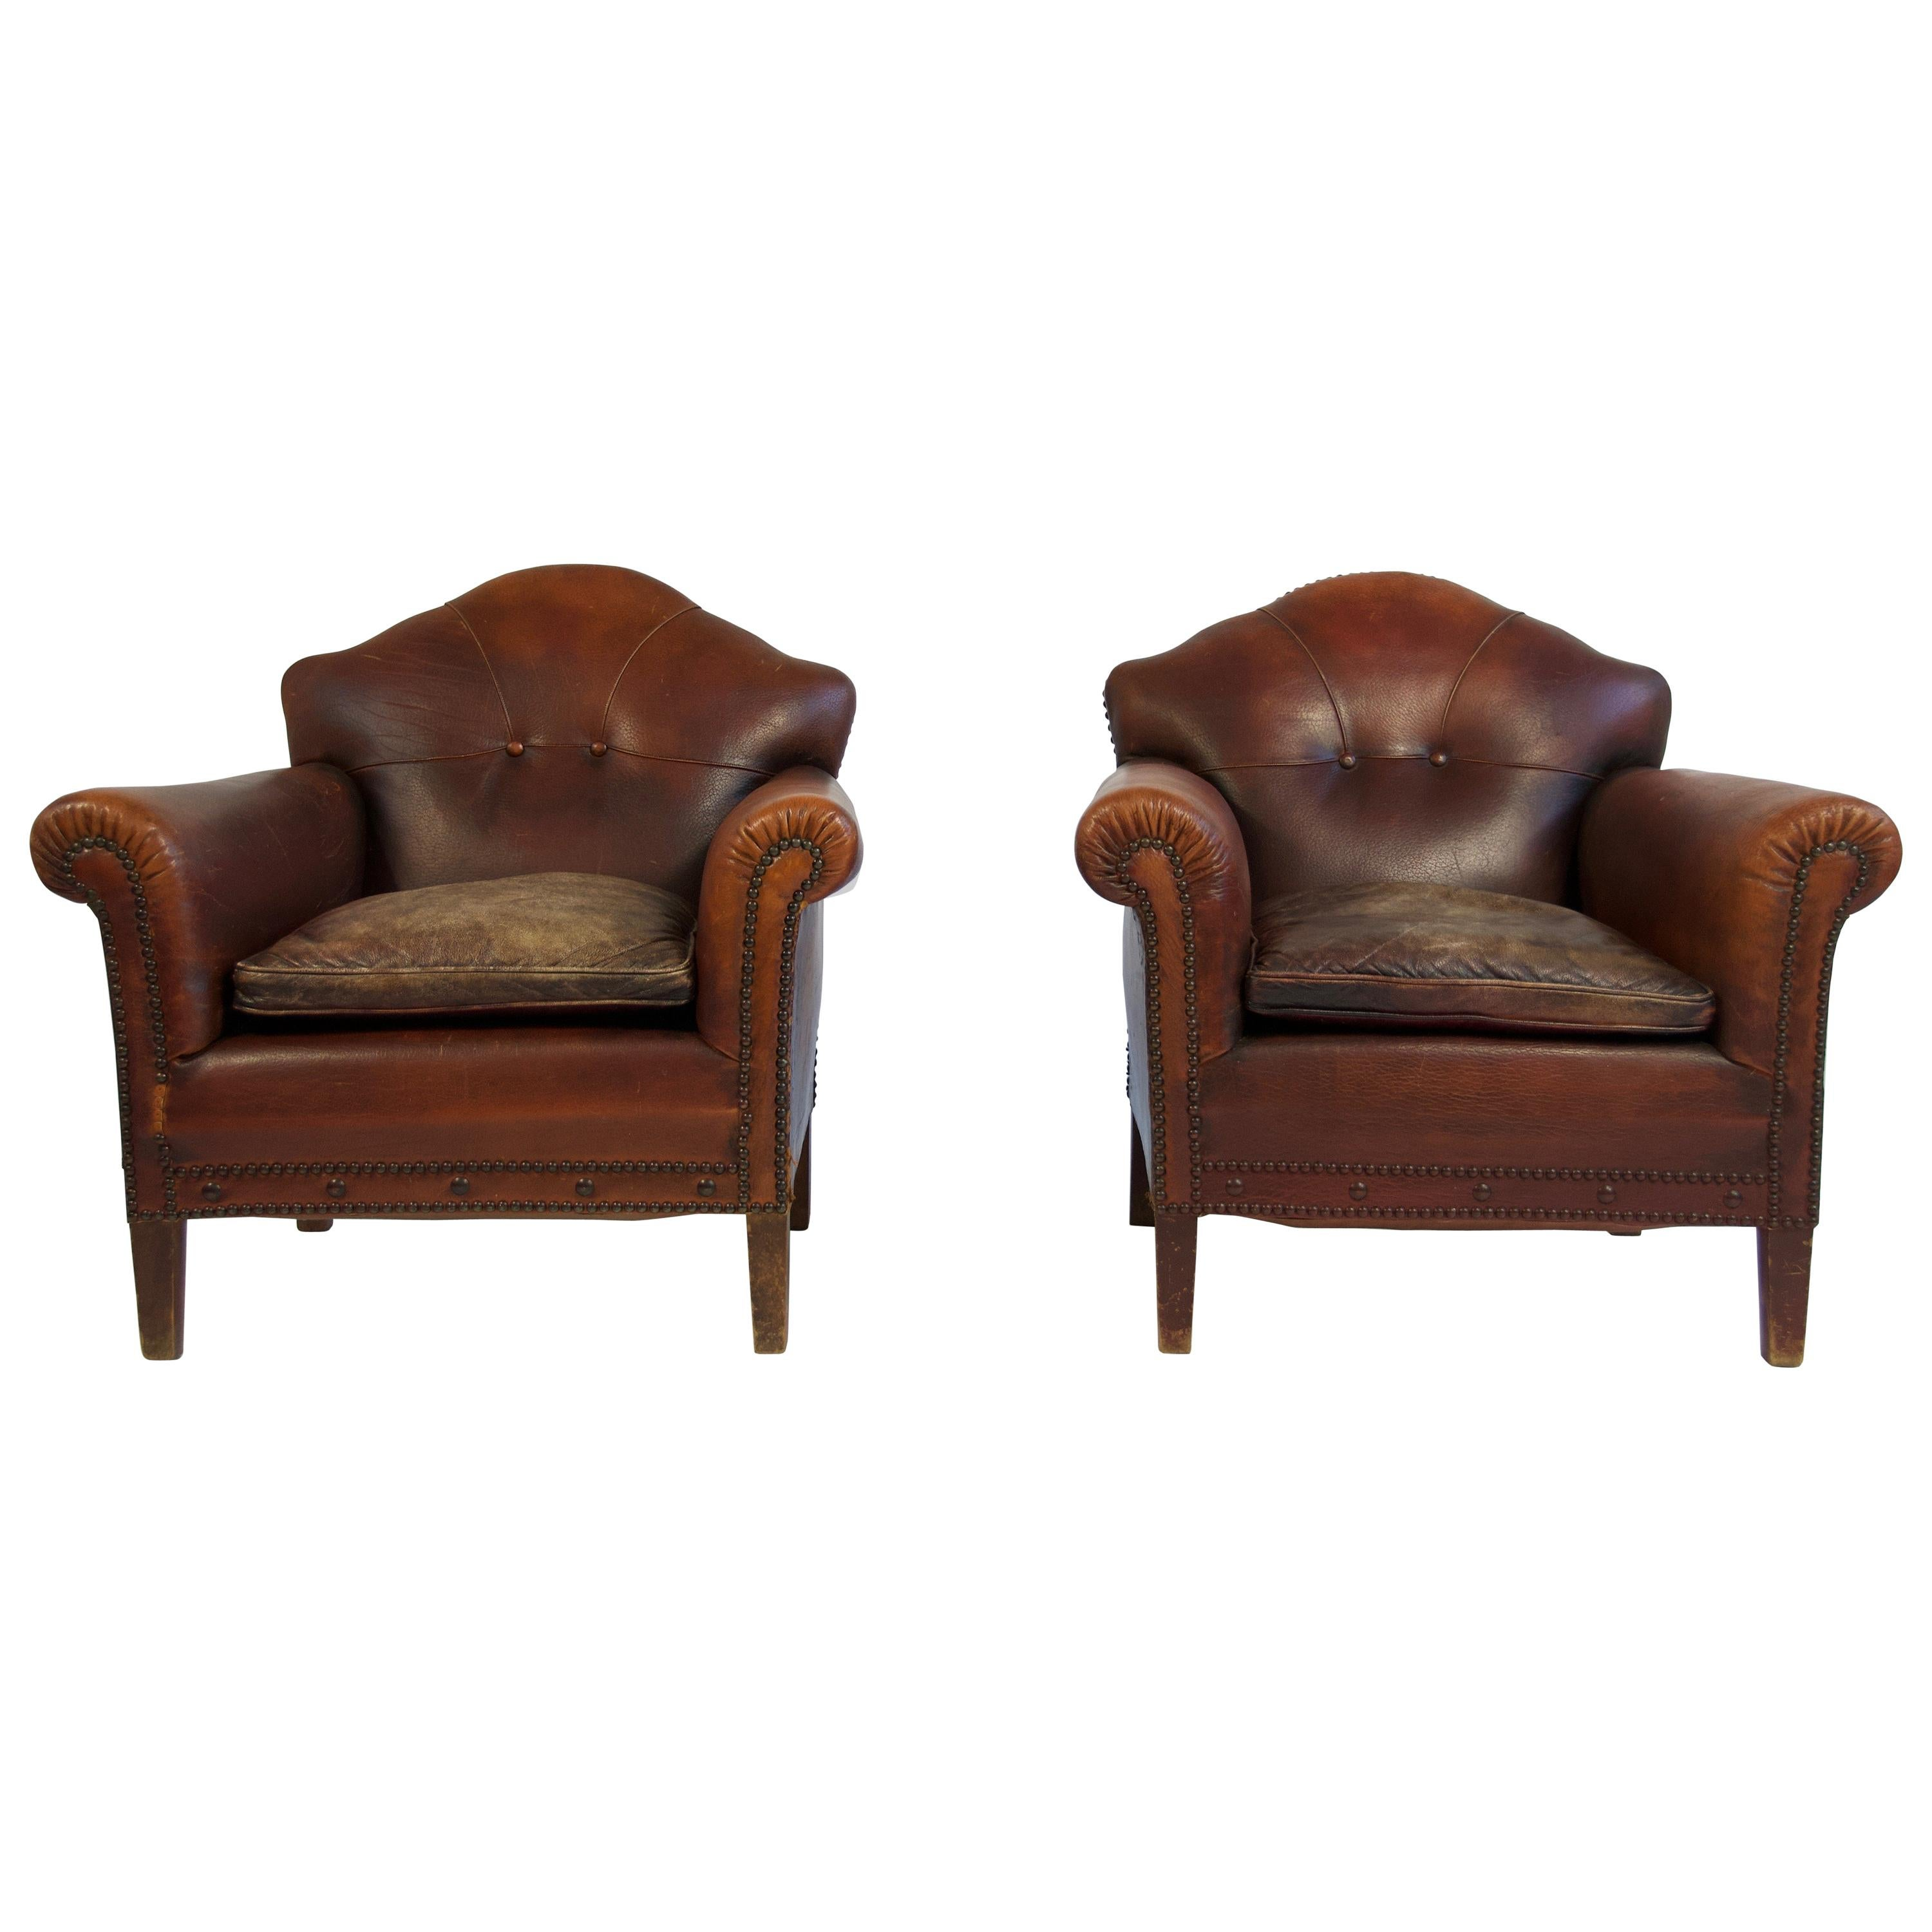 Pair Of 1920s European Leather Lounge Chairs For Sale